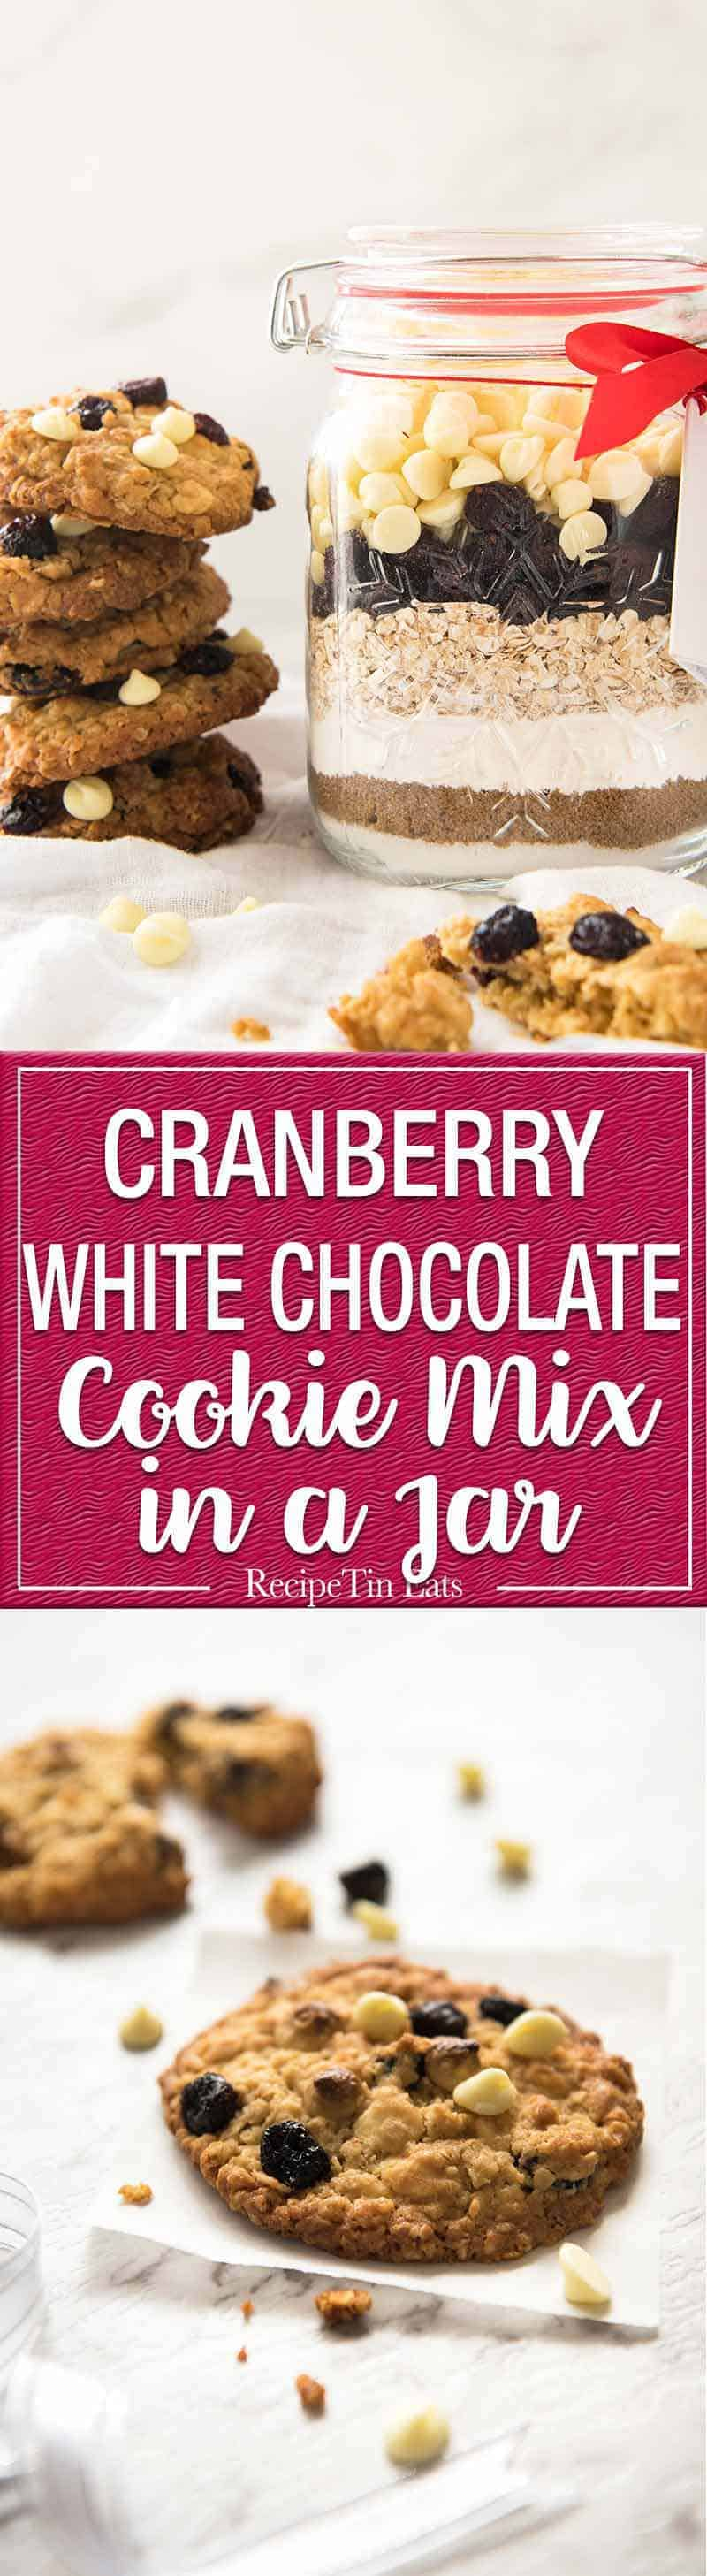 Cookie Mix in a Jar - White Chocolate Cranberry Cookies: Fantastic Christmas gift in a mason jar, just add melted butter and an egg, no beater required! www.recipetineats.com